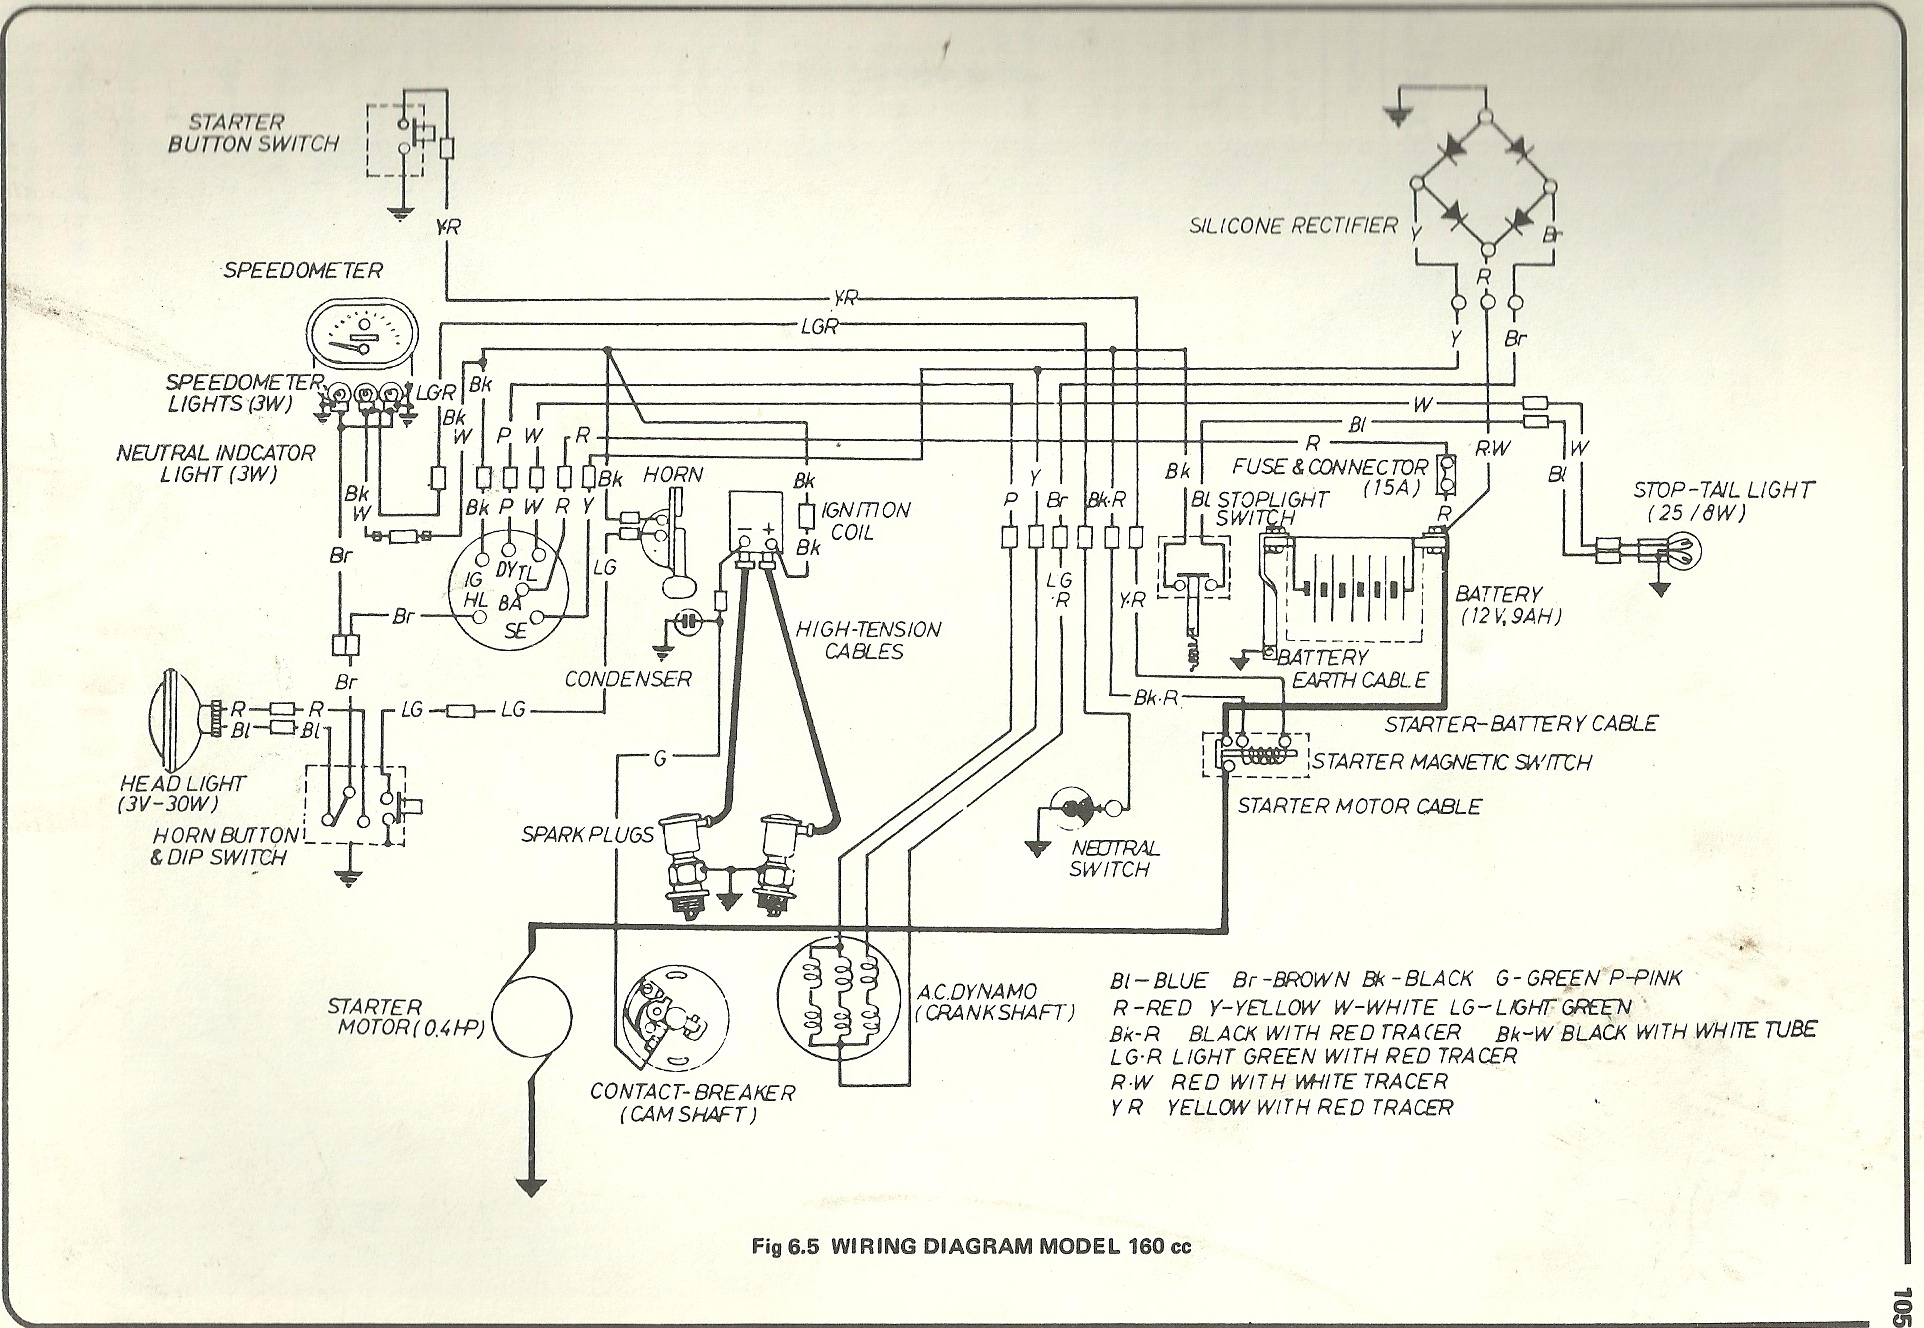 wiring diagrams honda cb 750 parts honda cb 750 1995 wiring diagram #34